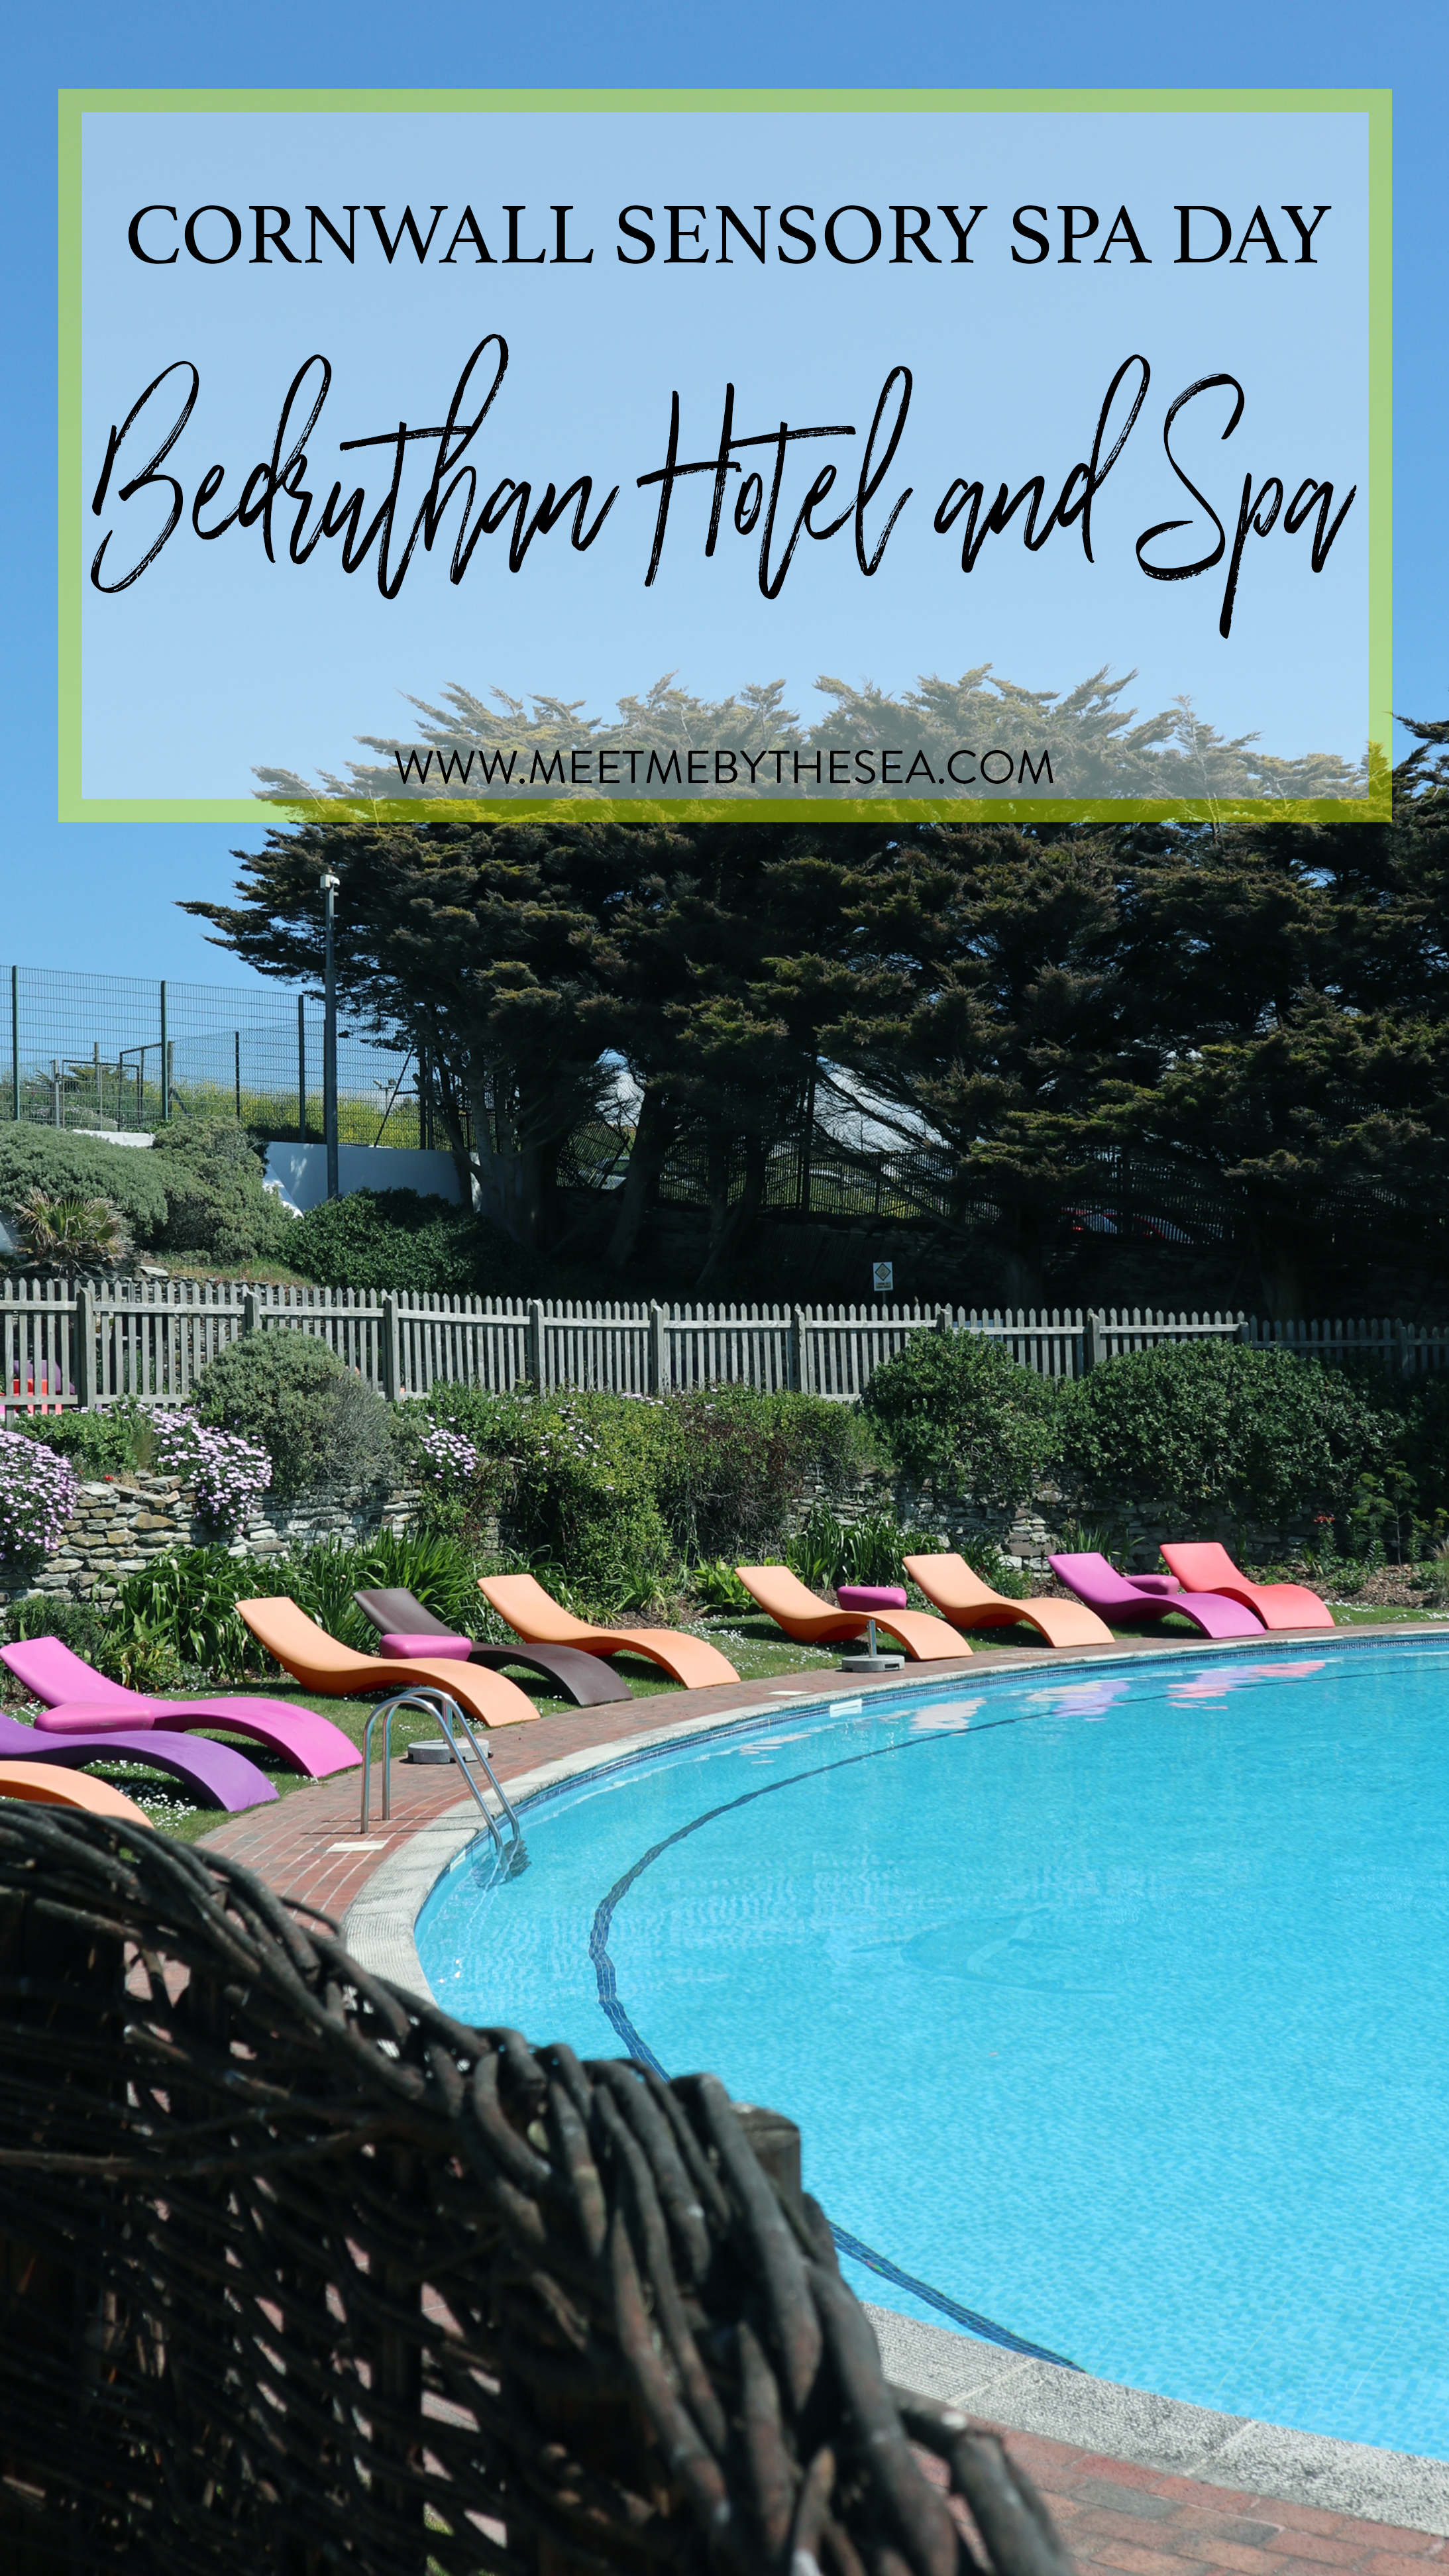 spa days in cornwall - the bedruthan hotel and spa